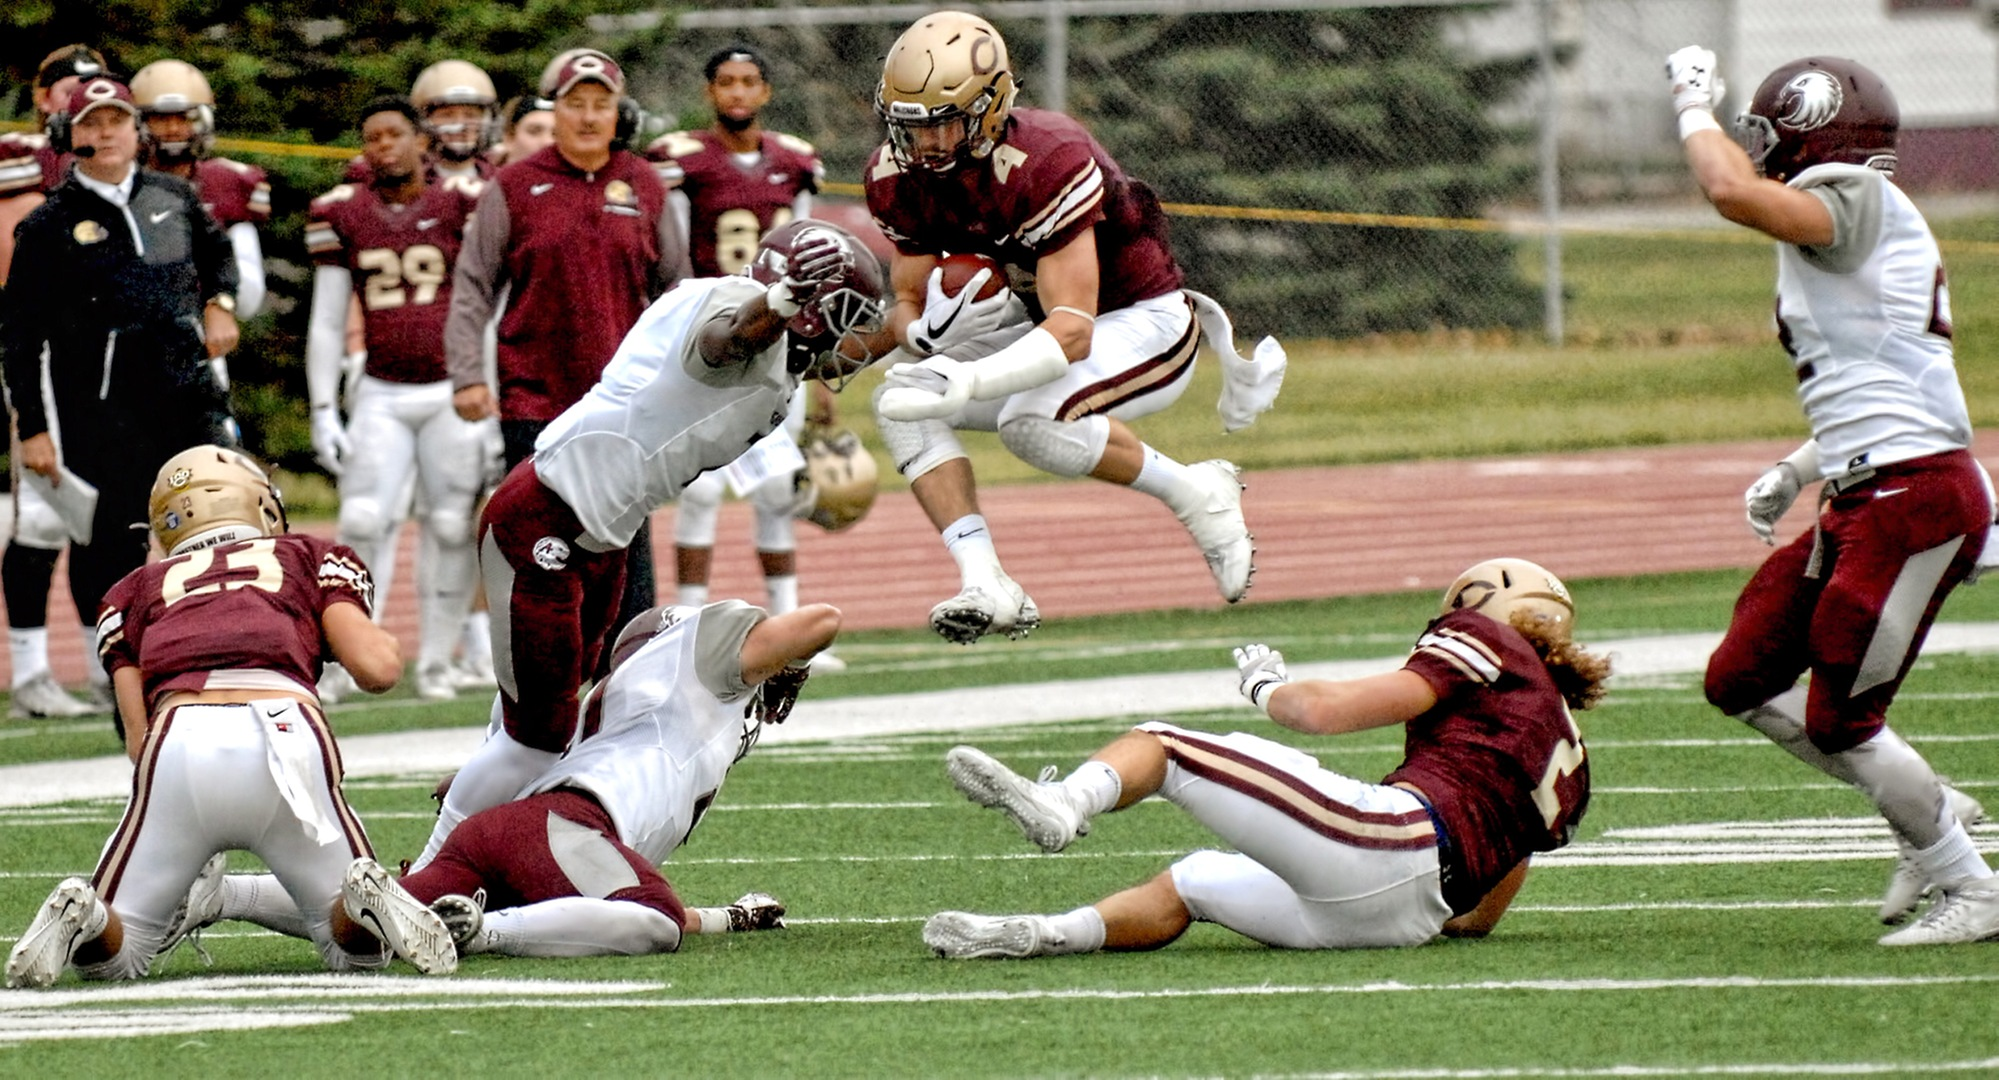 Senior Jason Montoyne flies through the air during one of his nine carries in the Cobbers' 42-20 win over Augsburg.